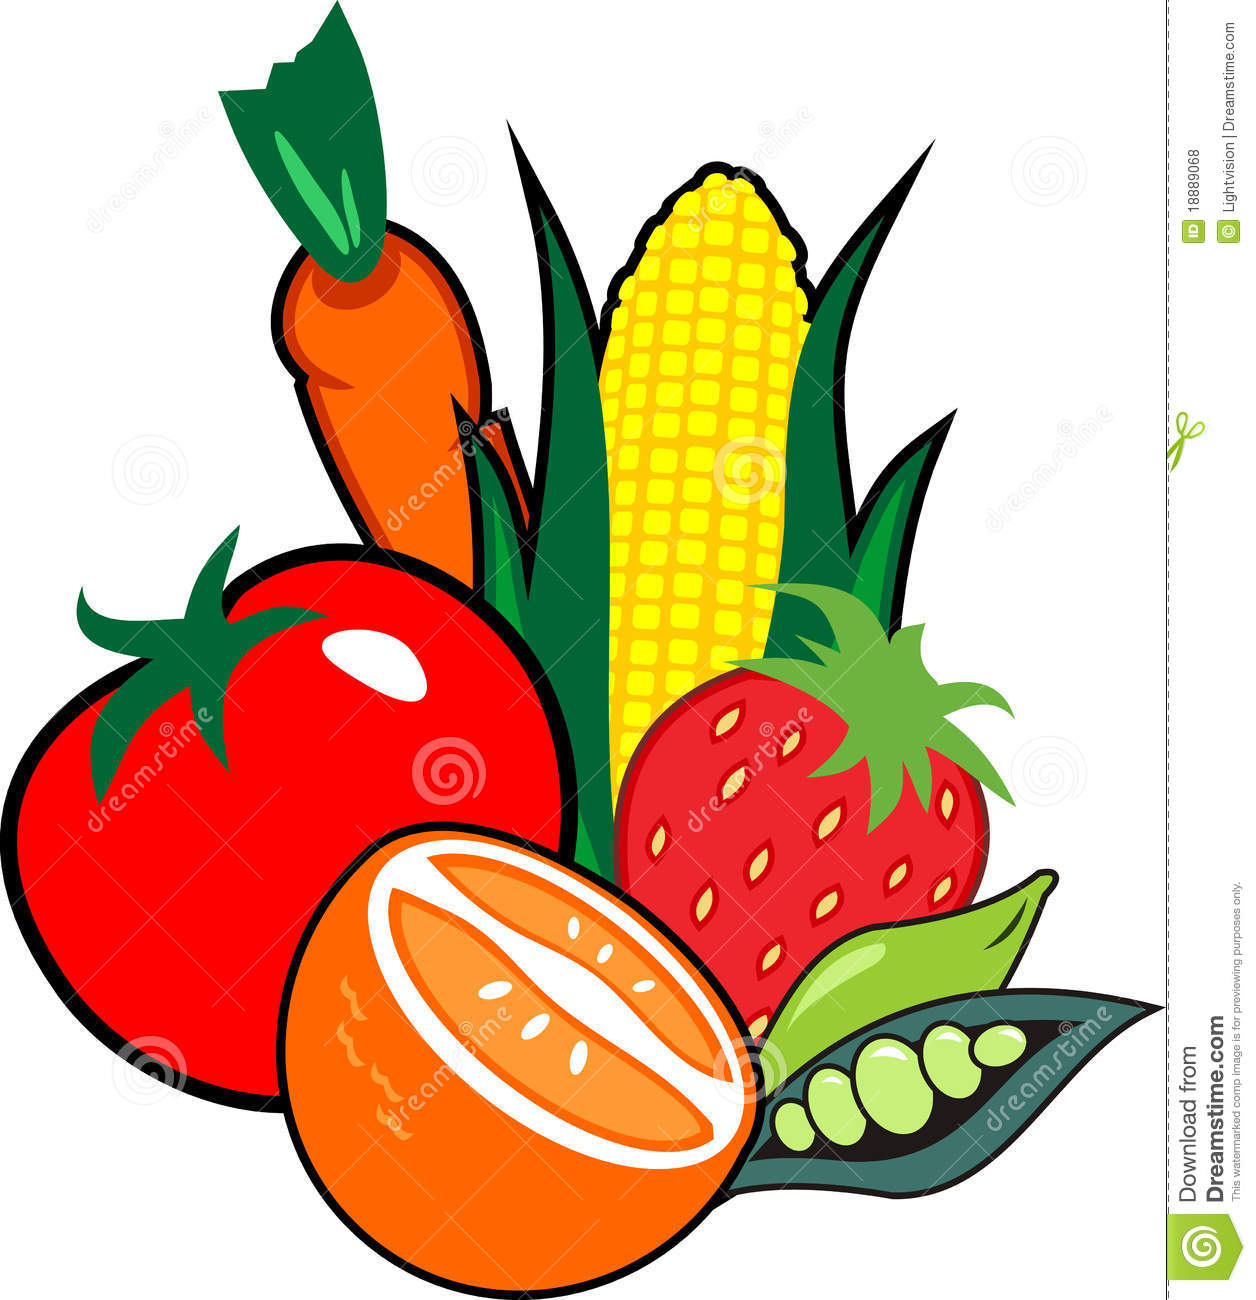 Vegetable clipart #15, Download drawings